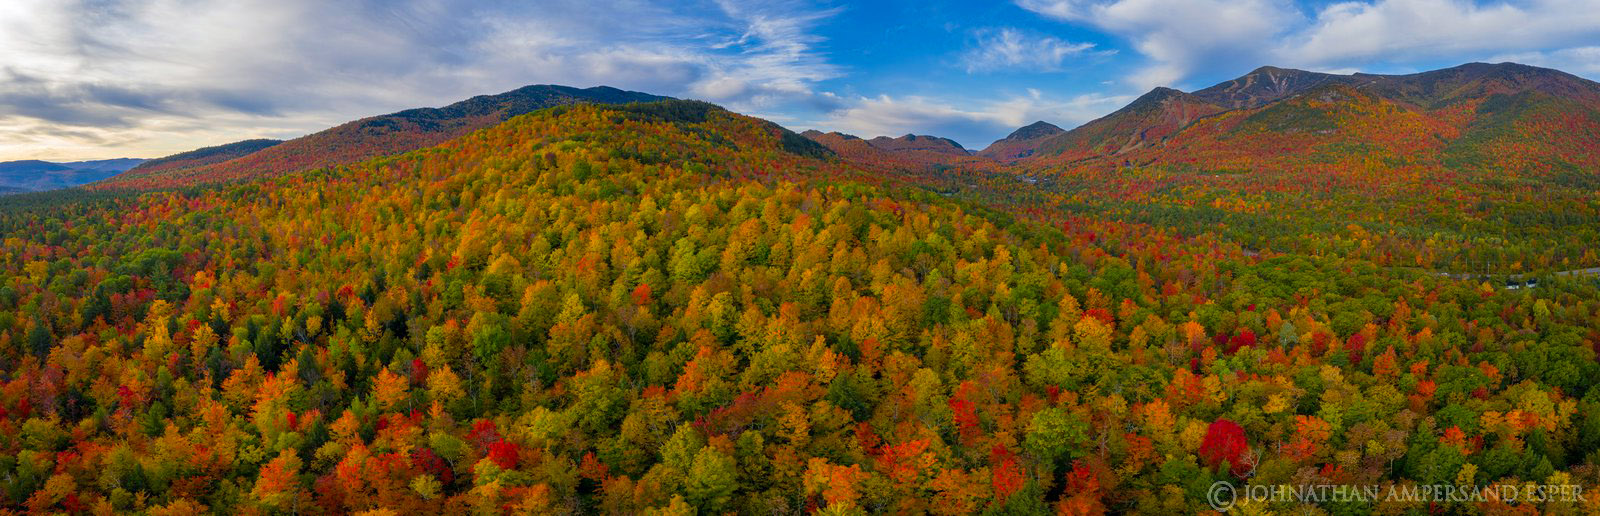 Whiteface Mt,Wilmington,Fox Farm Rd,drone,2019,fall,Whiteface Mountain,Sentinel Range,panorama, photo